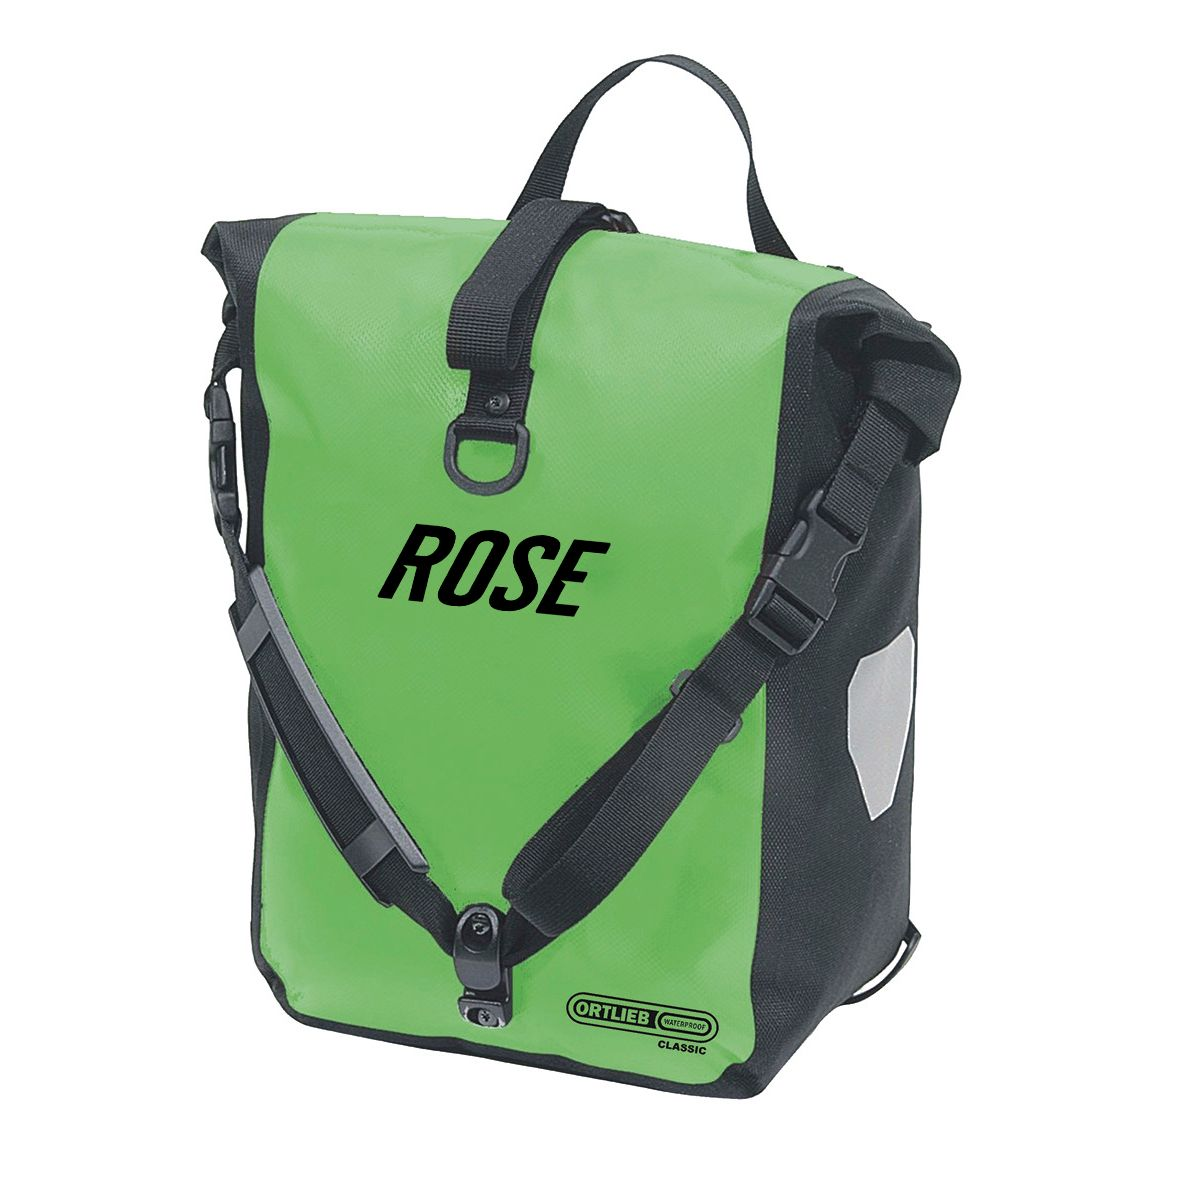 CLASSIC/ROSE Sport Roller set of two pannier bags